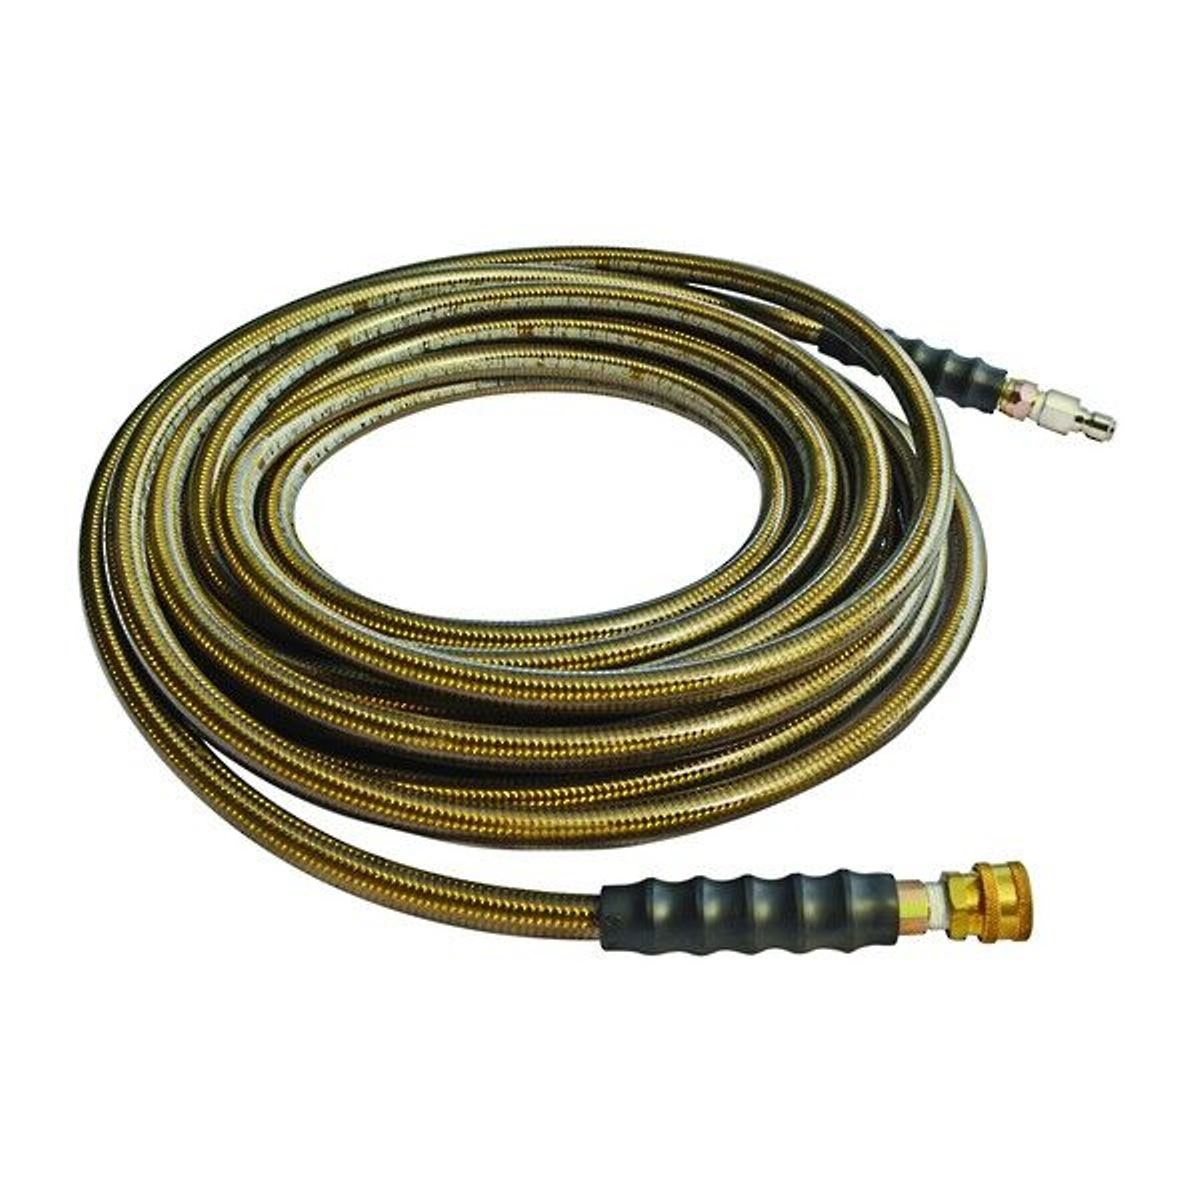 HIgh Pressure Hose 15m with Quick Connections